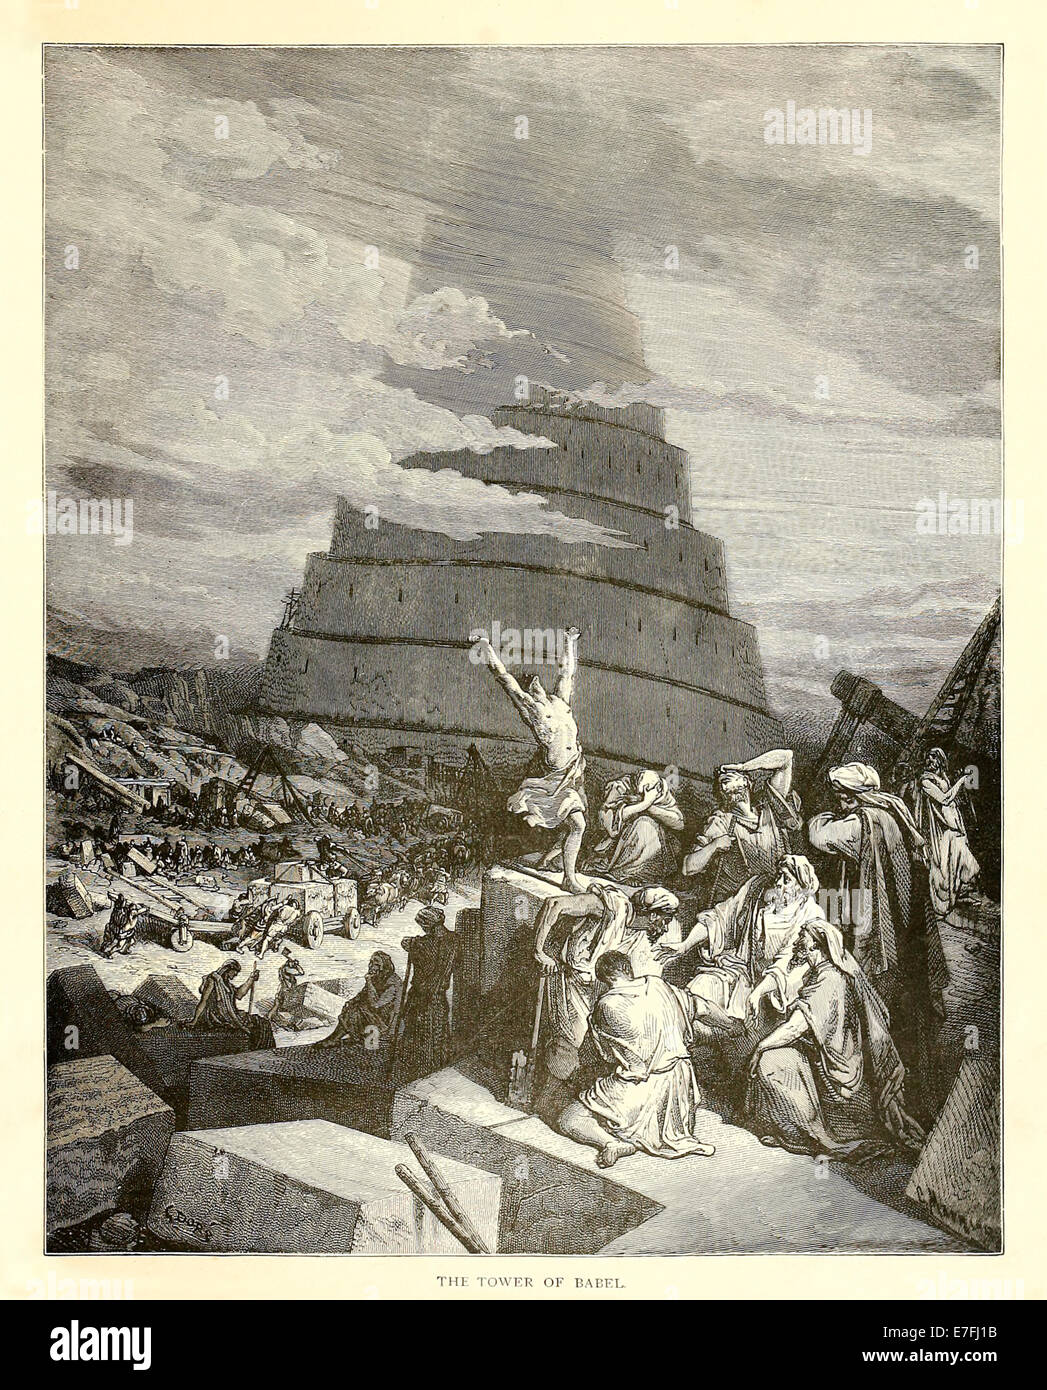 The Tower of Babel - Illustration by Paul Gustave Doré (1832-1883) from  1880 edition of the Bible. See description for more information.